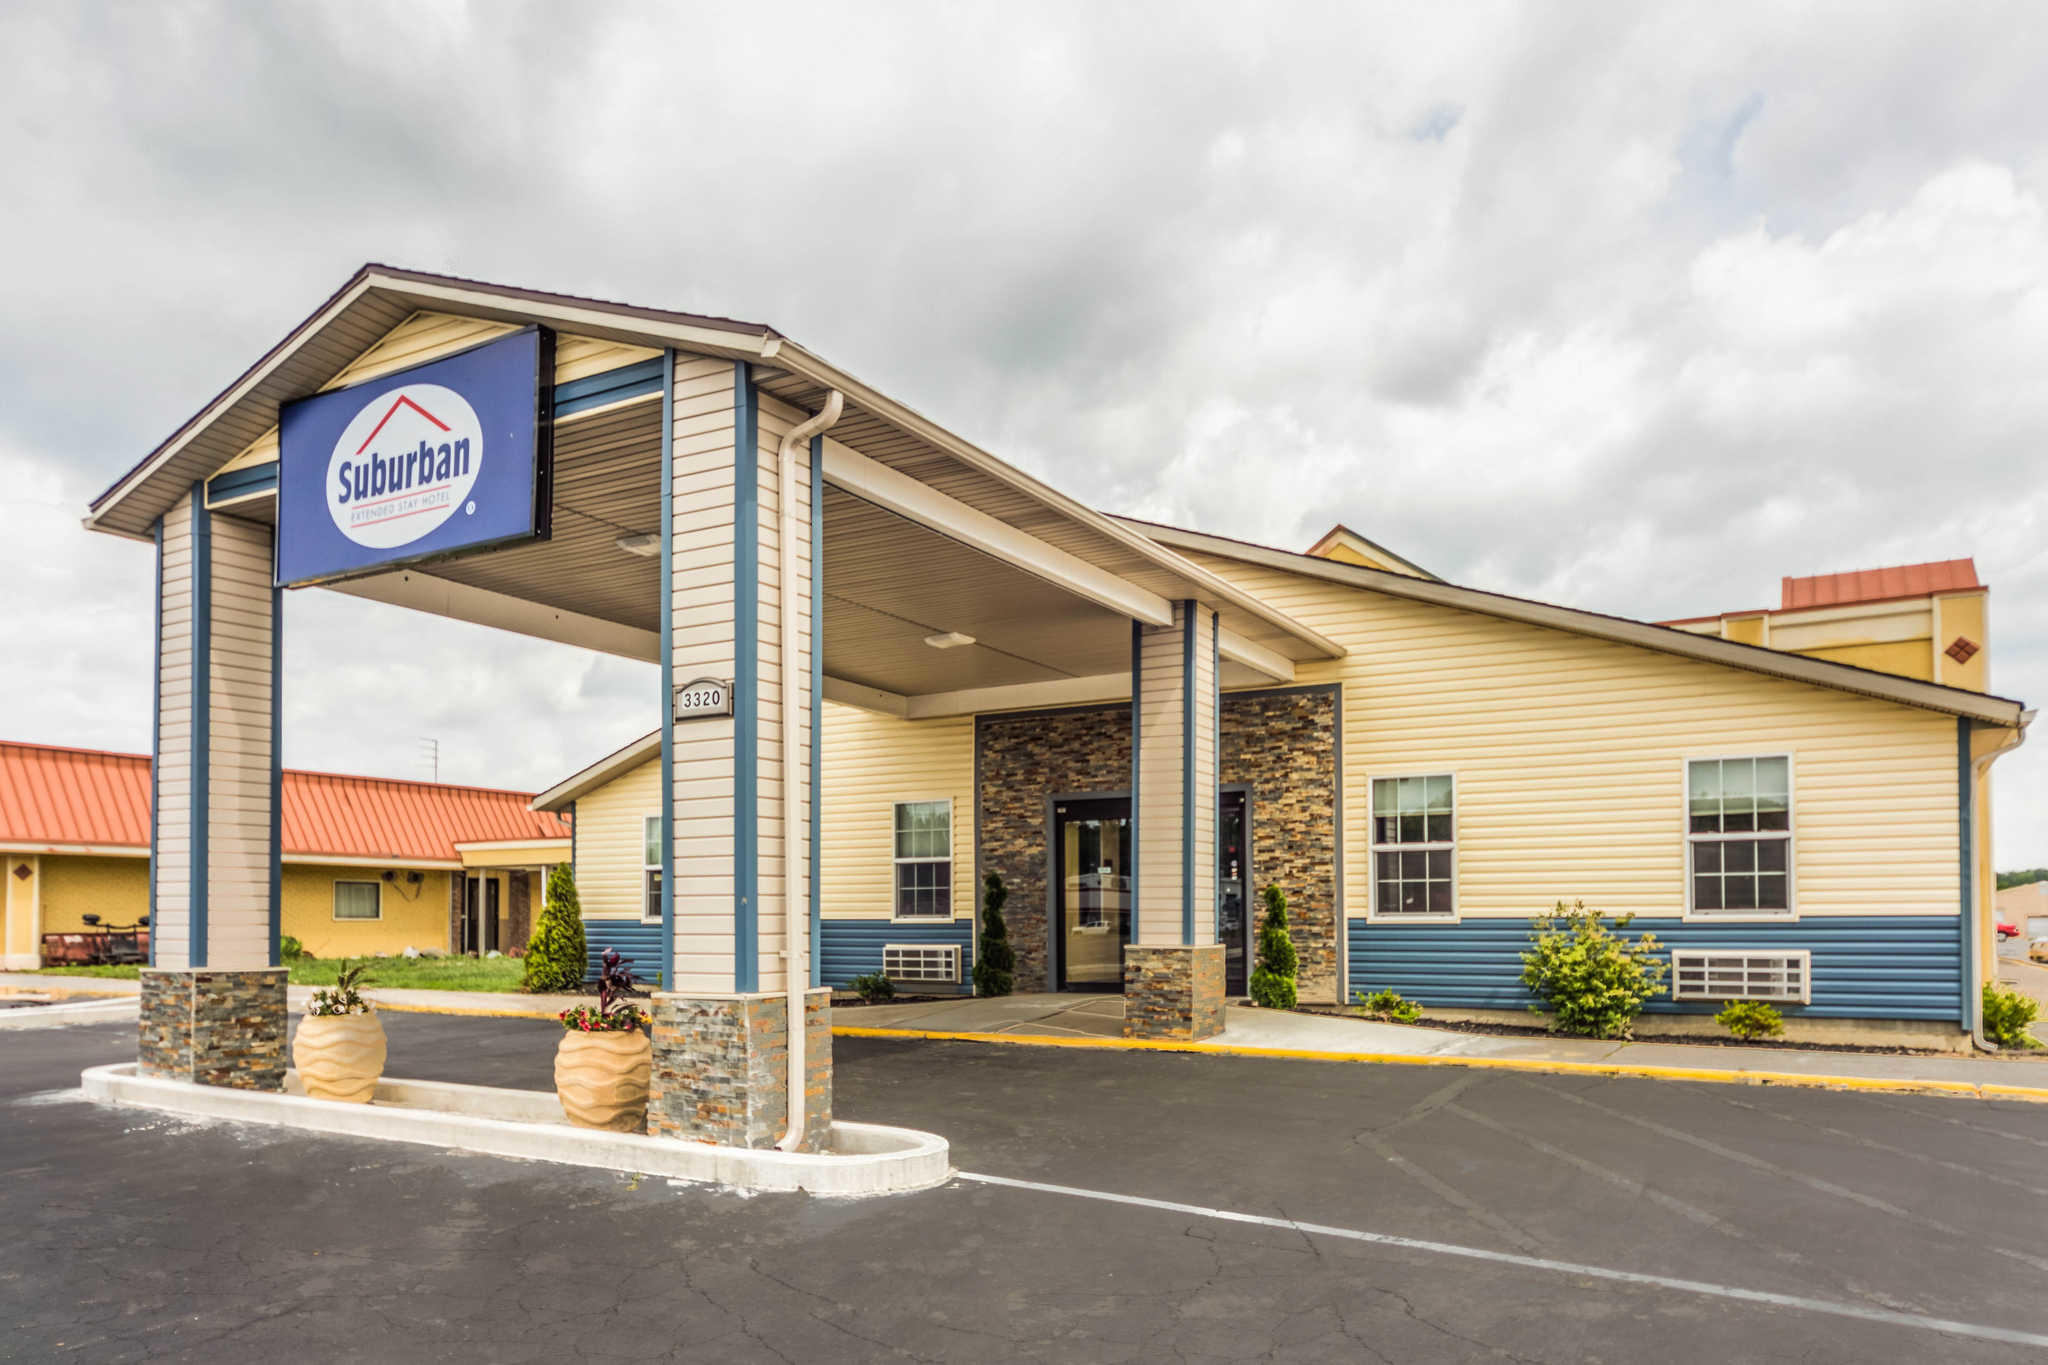 Suburban Extended Stay Hotel  Fort Wayne Indiana  In